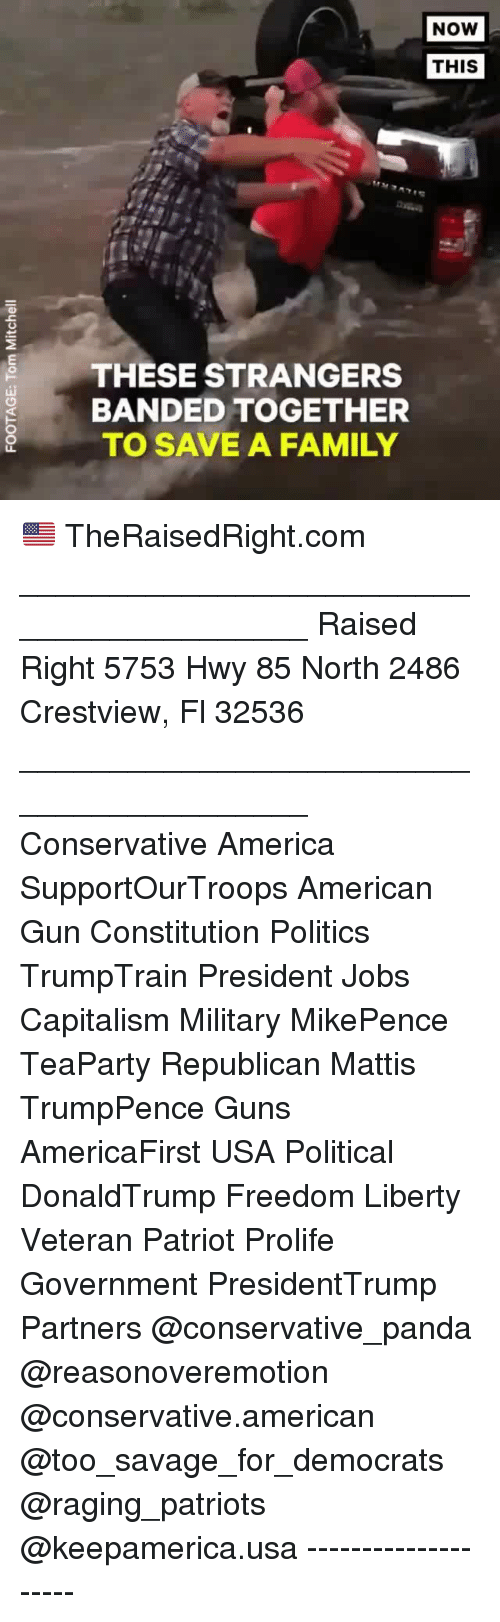 America, Family, and Guns: NOW  THIS  THESE STRANGERS  BANDED TOGETHER  TO SAVE A FAMILY 🇺🇸 TheRaisedRight.com _________________________________________ Raised Right 5753 Hwy 85 North 2486 Crestview, Fl 32536 _________________________________________ Conservative America SupportOurTroops American Gun Constitution Politics TrumpTrain President Jobs Capitalism Military MikePence TeaParty Republican Mattis TrumpPence Guns AmericaFirst USA Political DonaldTrump Freedom Liberty Veteran Patriot Prolife Government PresidentTrump Partners @conservative_panda @reasonoveremotion @conservative.american @too_savage_for_democrats @raging_patriots @keepamerica.usa --------------------